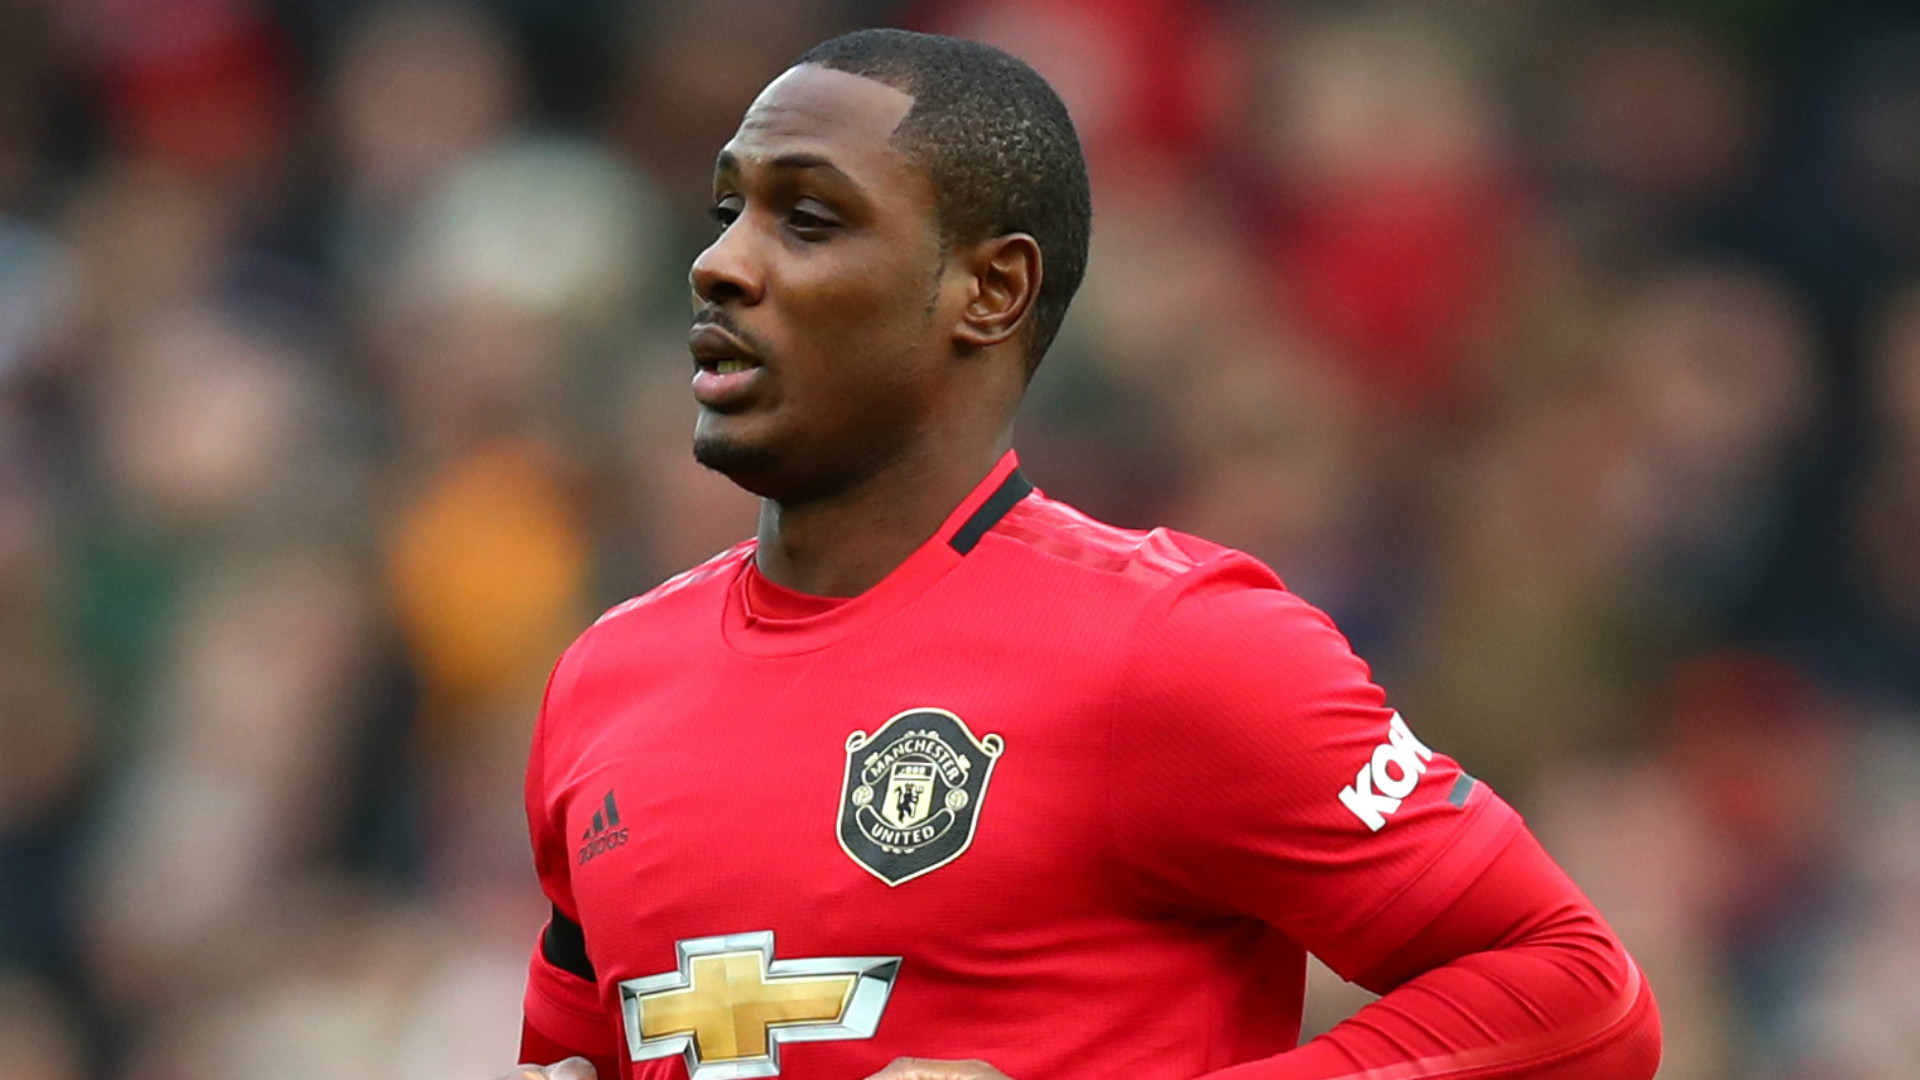 Odion Ighalo: Ex-Manchester United striker joins Al Shabab from Shanghai Shenhua